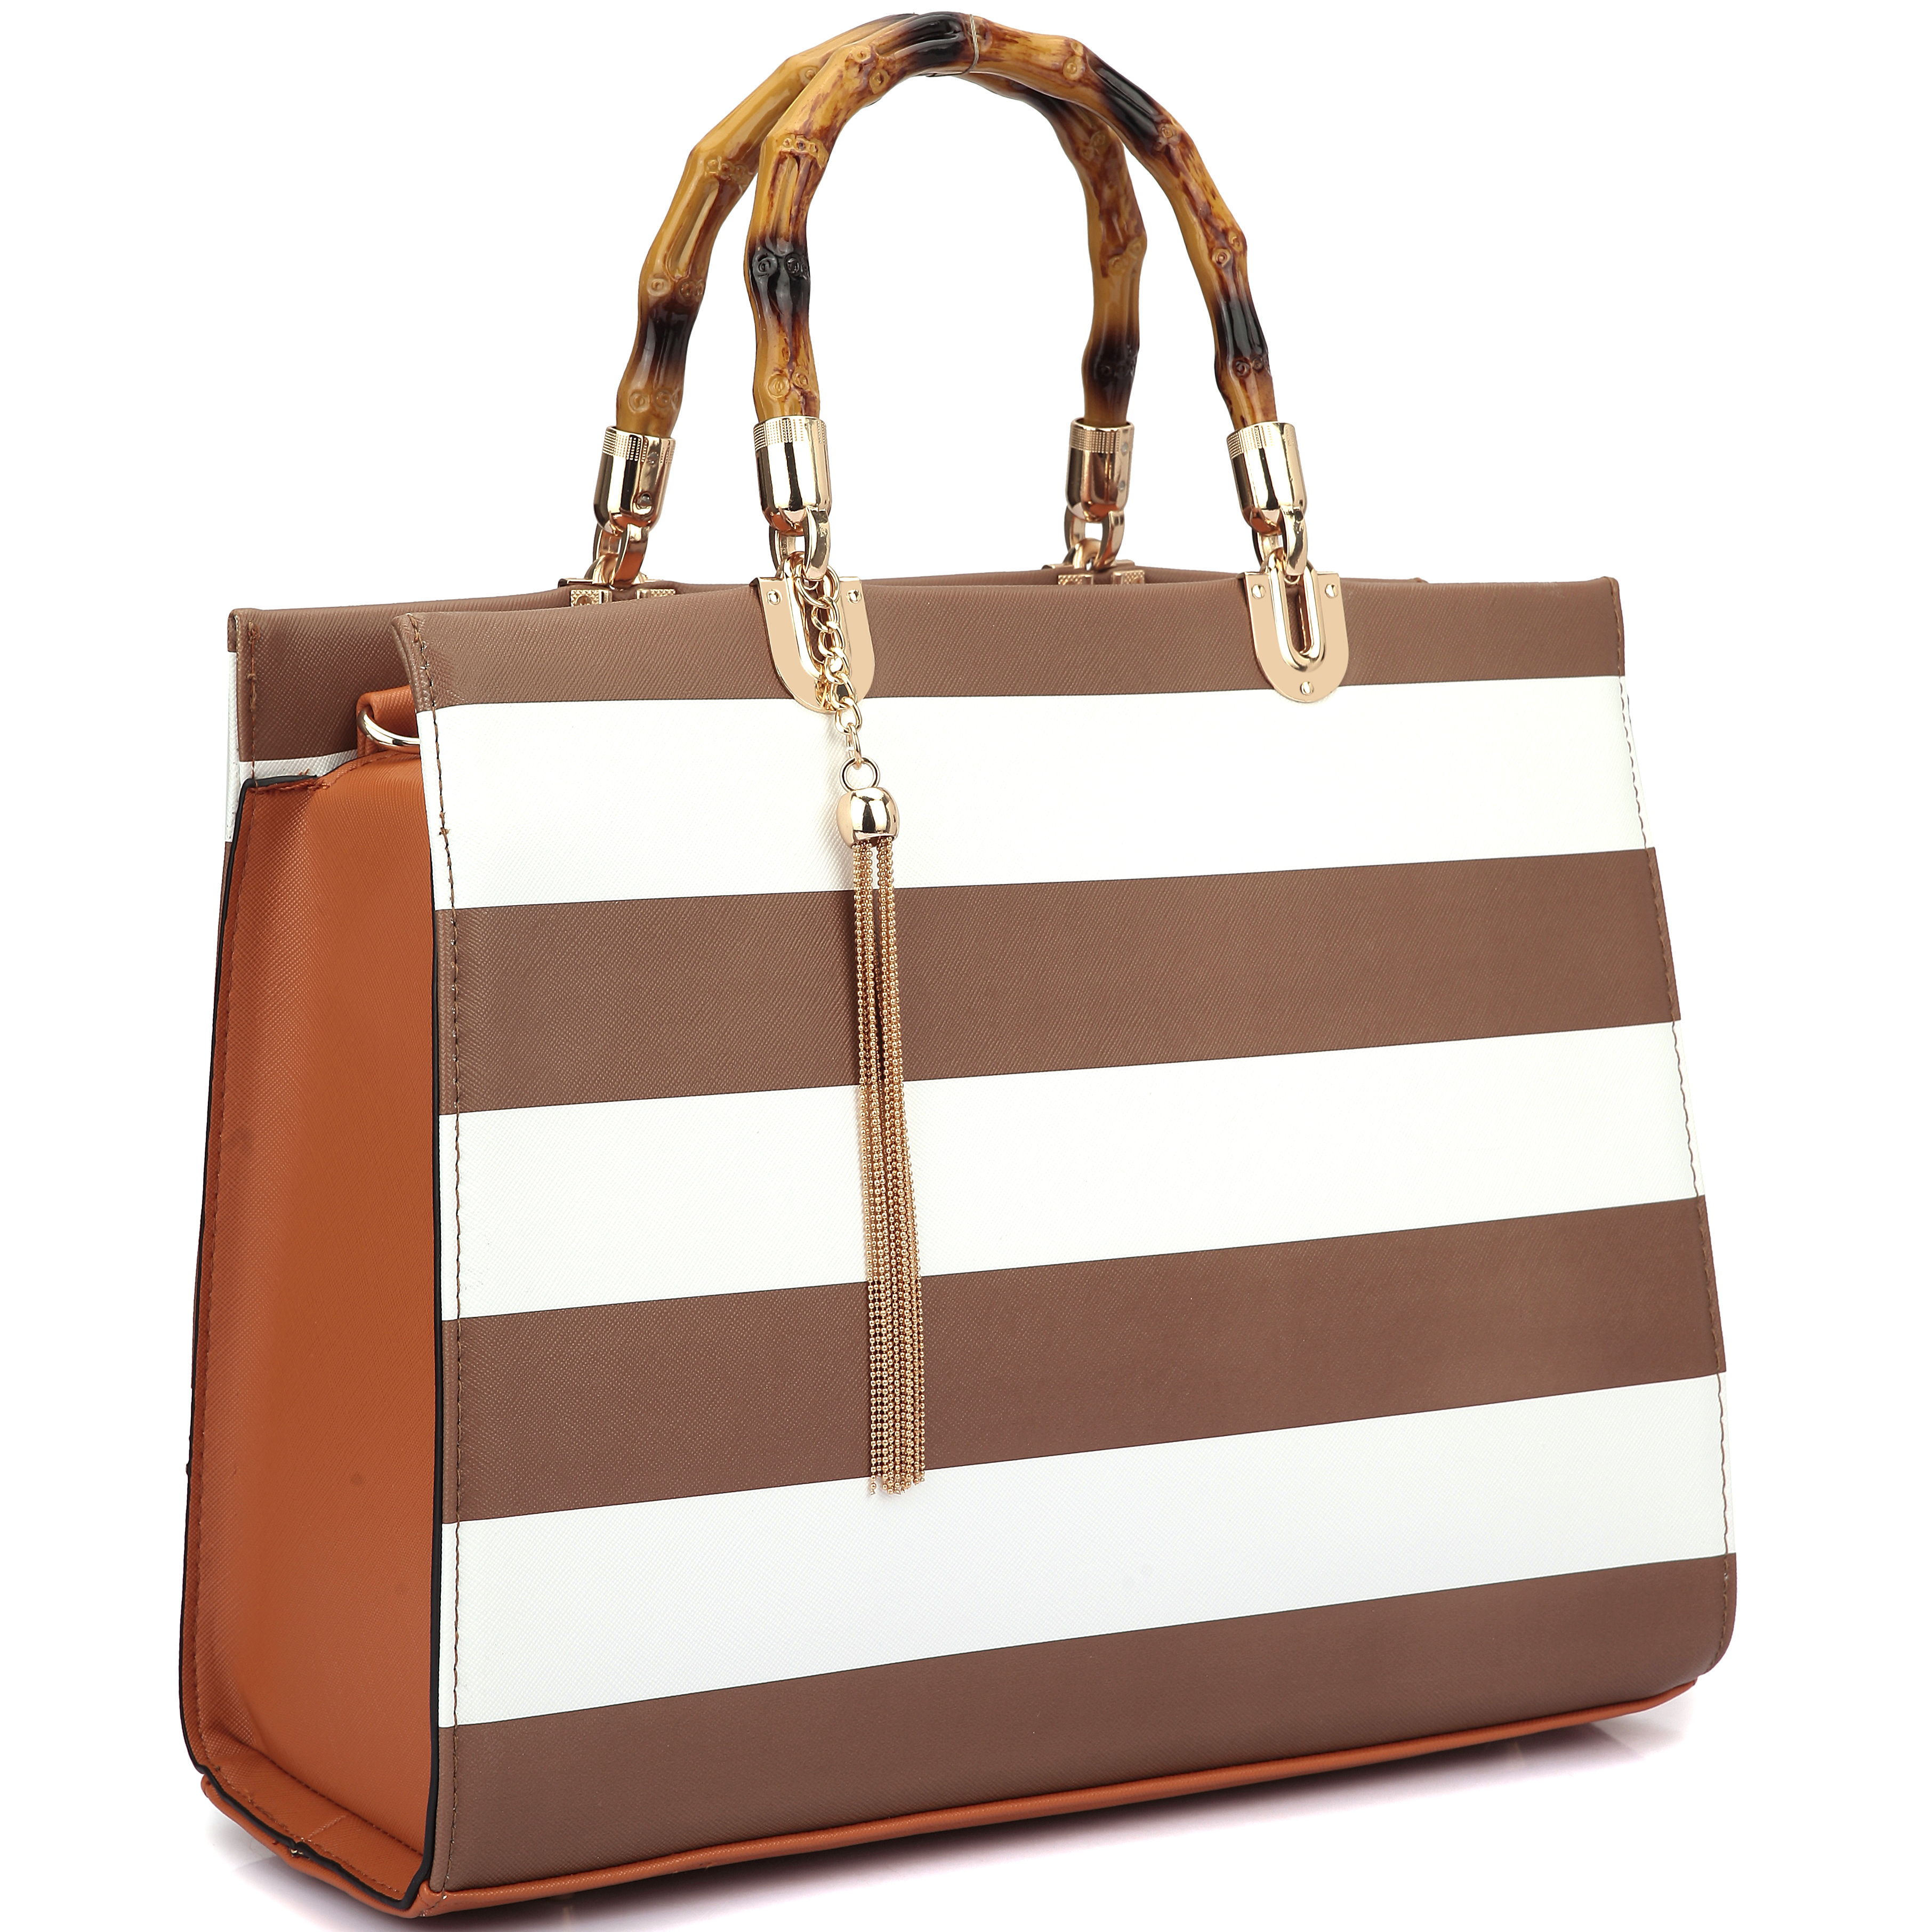 Wooden Handle Faux Patent Leather Satchel Bag